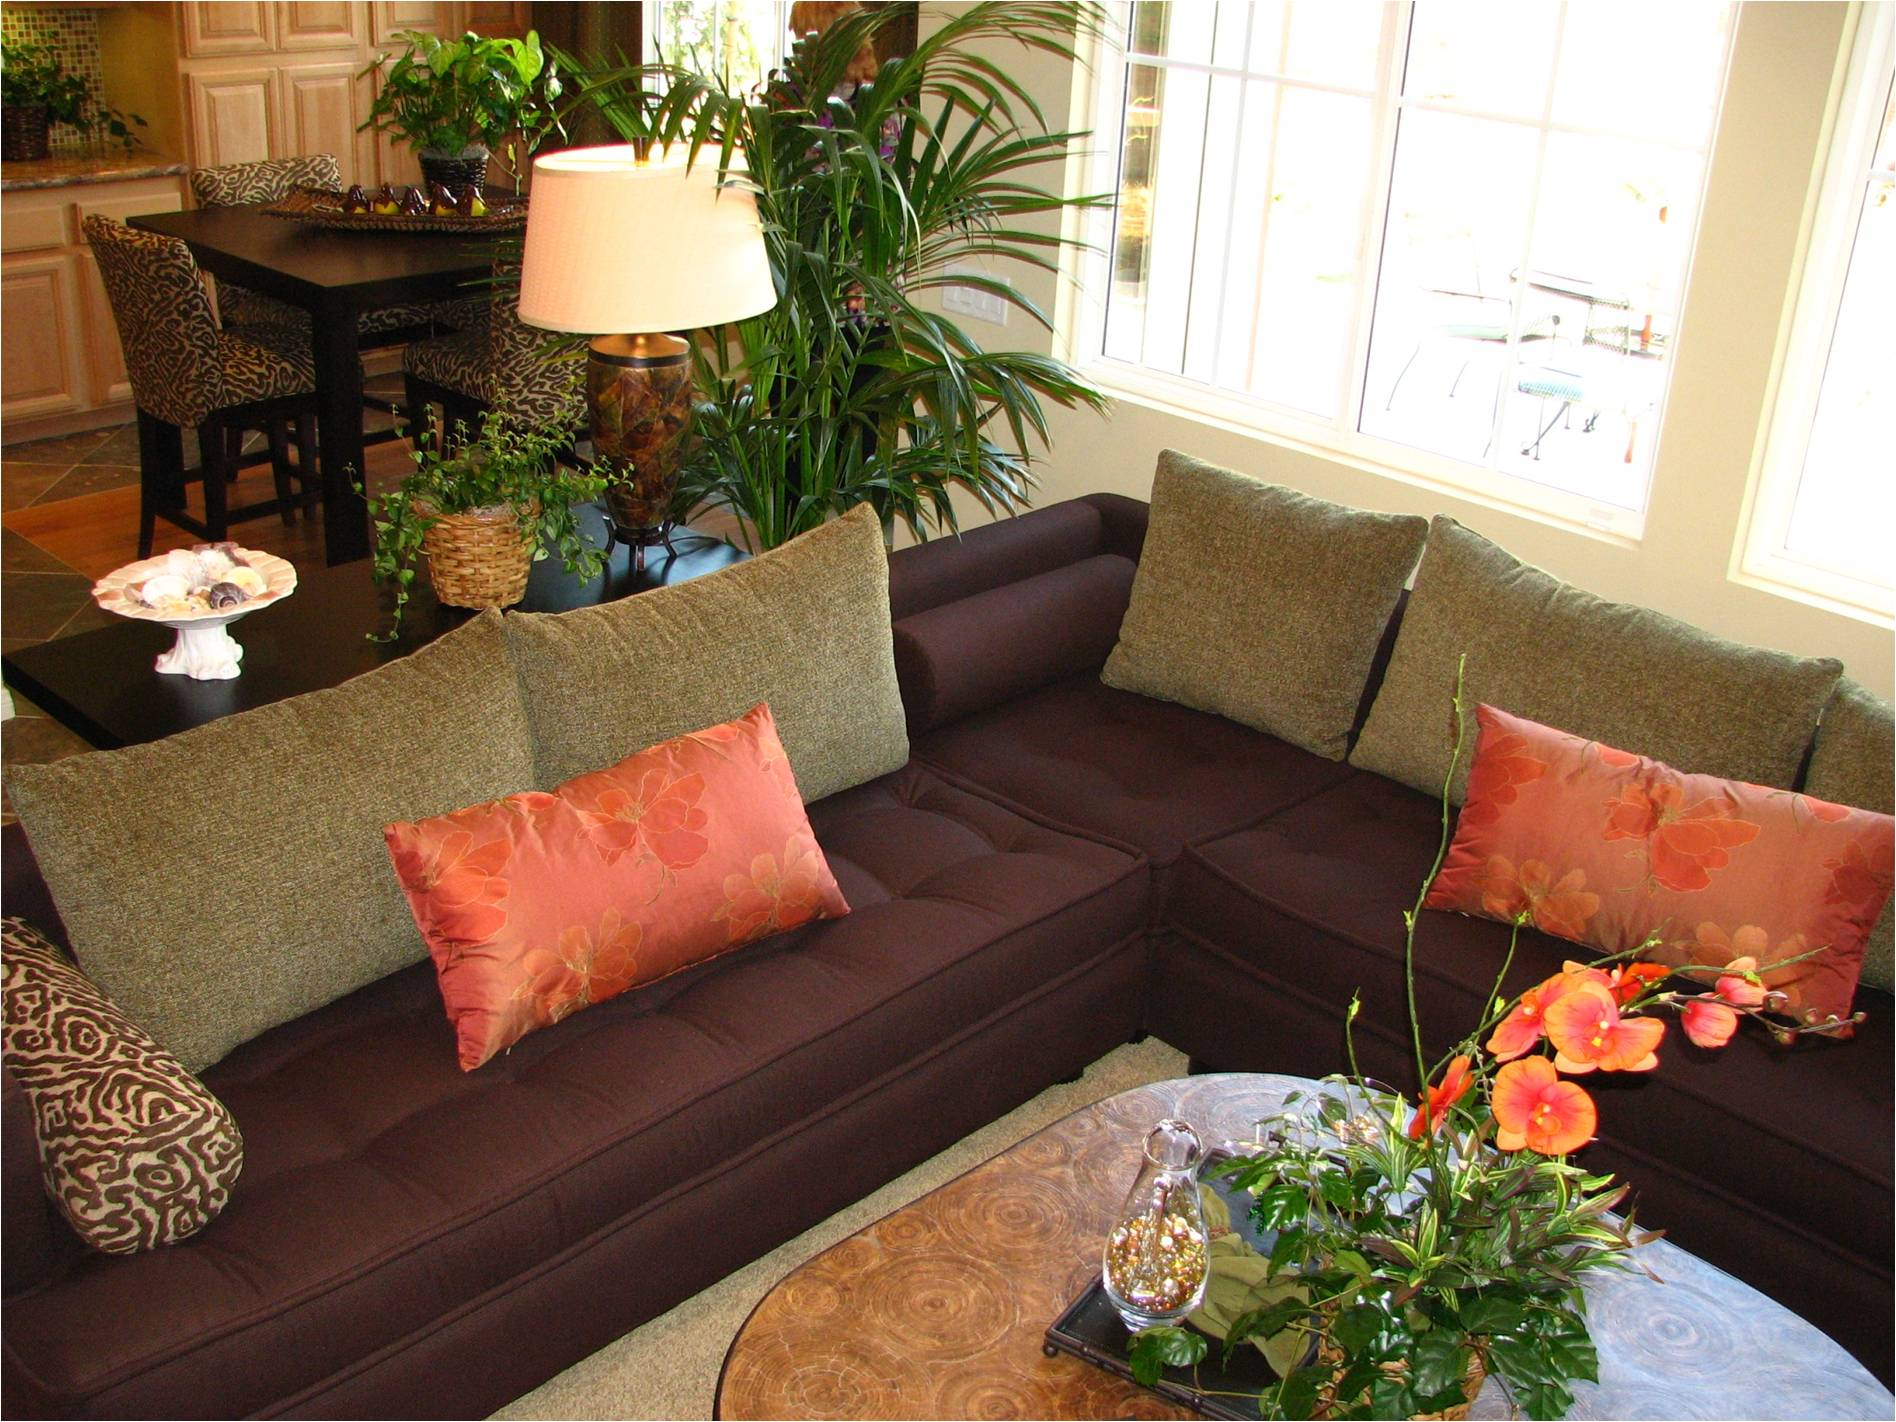 Living Room Feng Shui That Makes Sense By Cathleen Mccandless